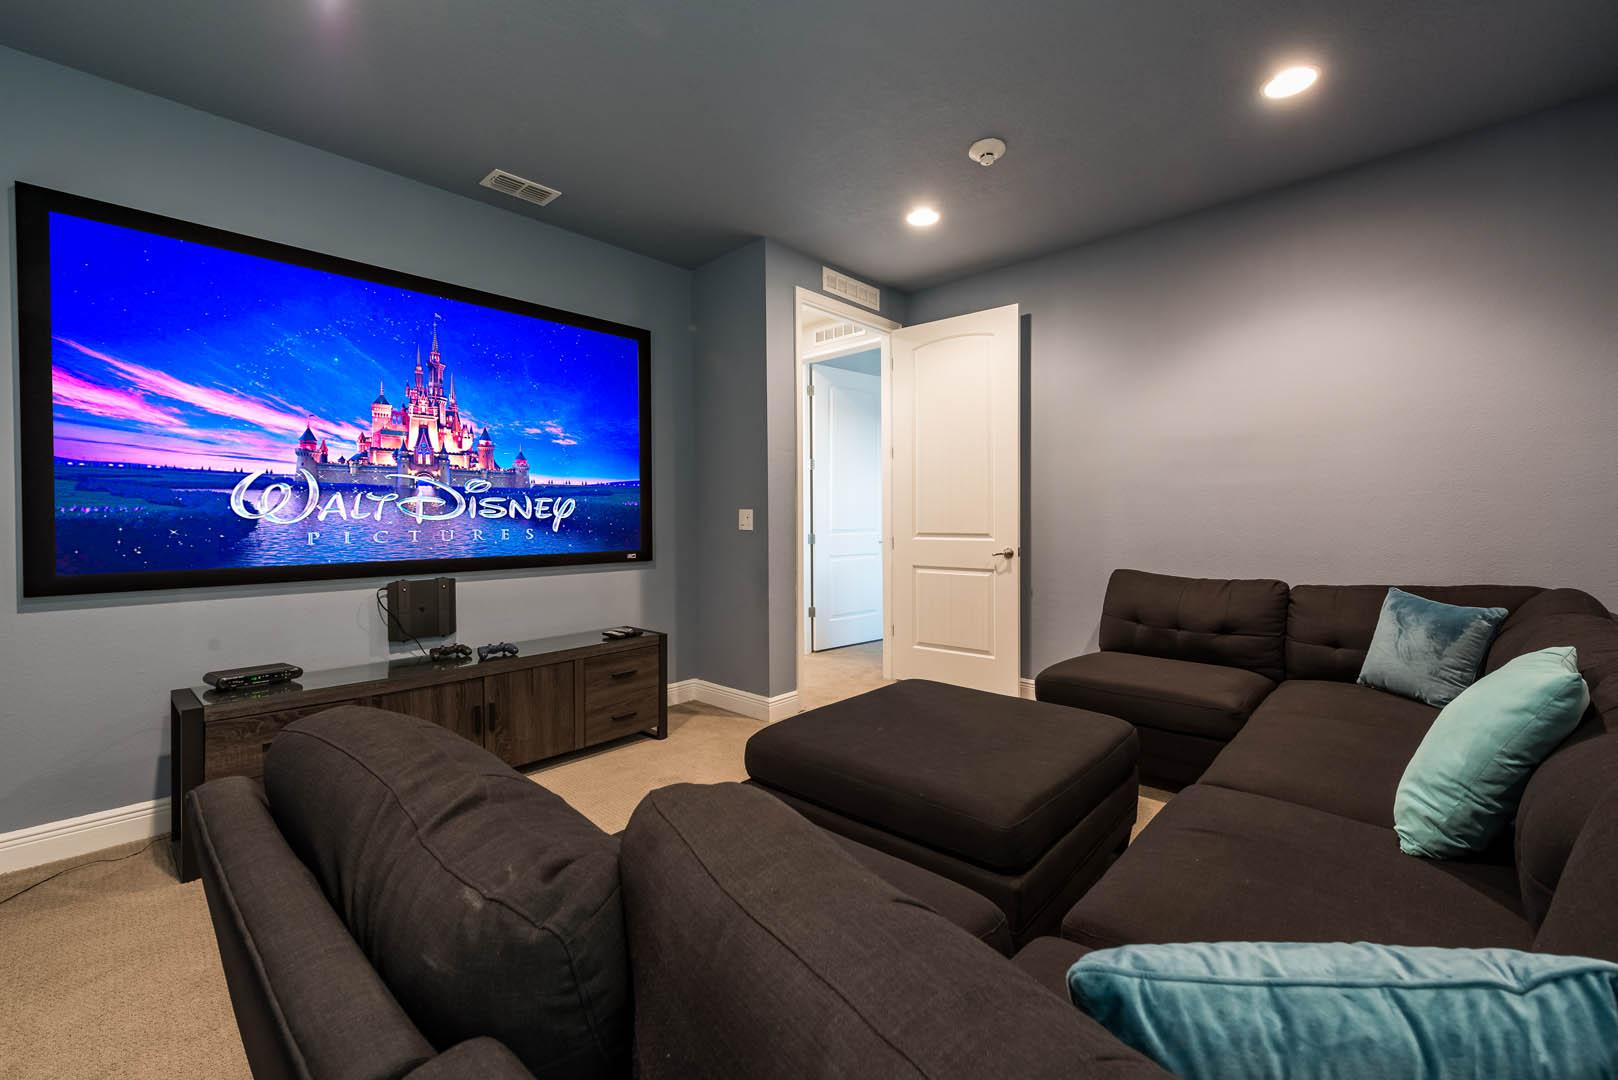 Property Image 1 - Stylish Home with Themed Game Room near Disney